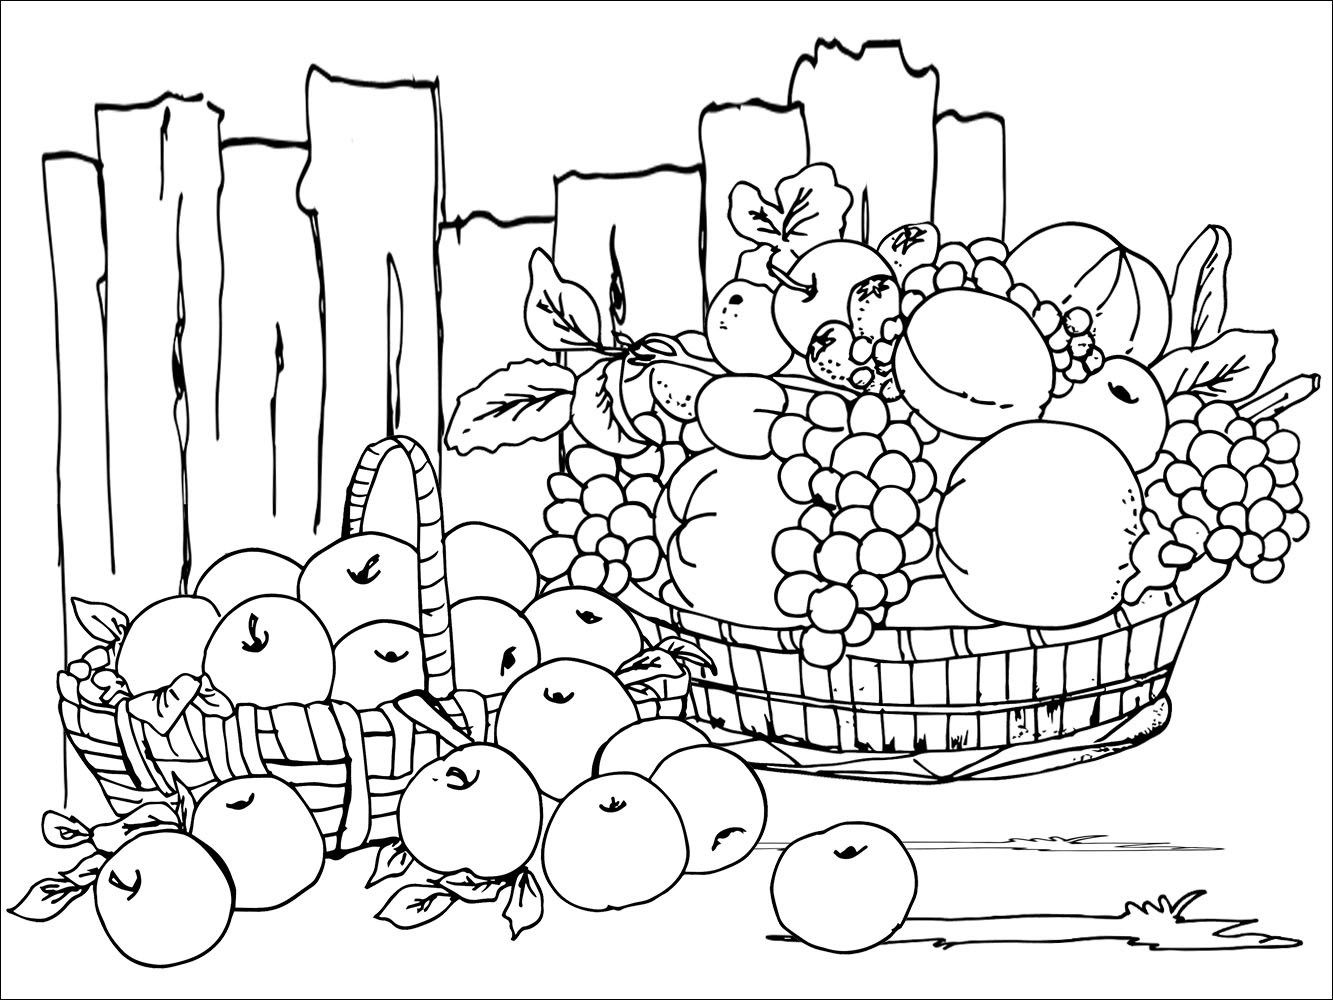 Harvest Festival Colouring Sheet